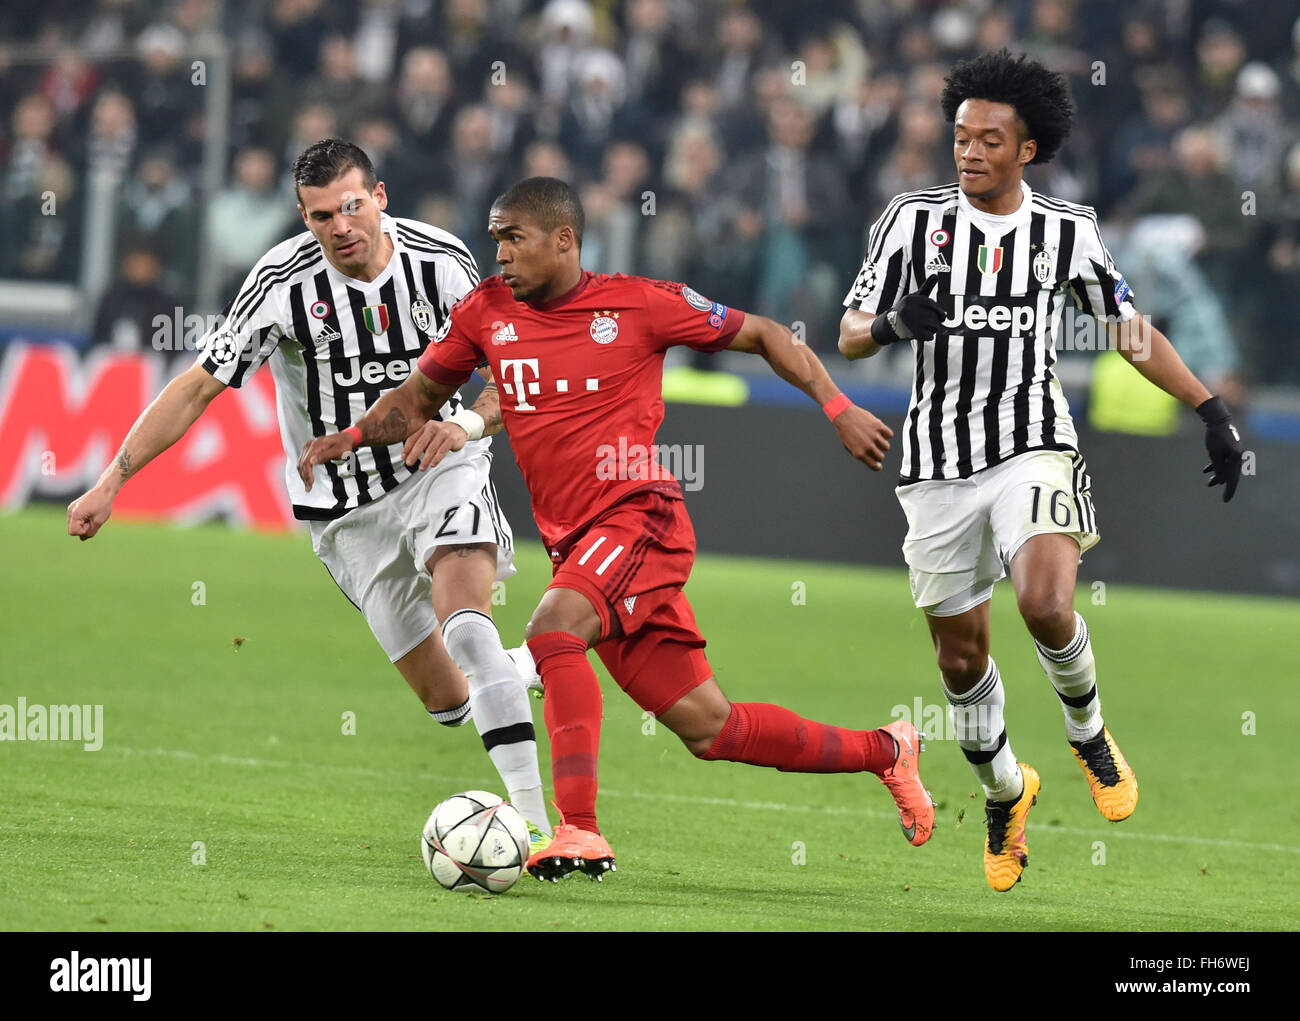 Munich s Douglas Costa C vies for the ball with Juve s Stefano